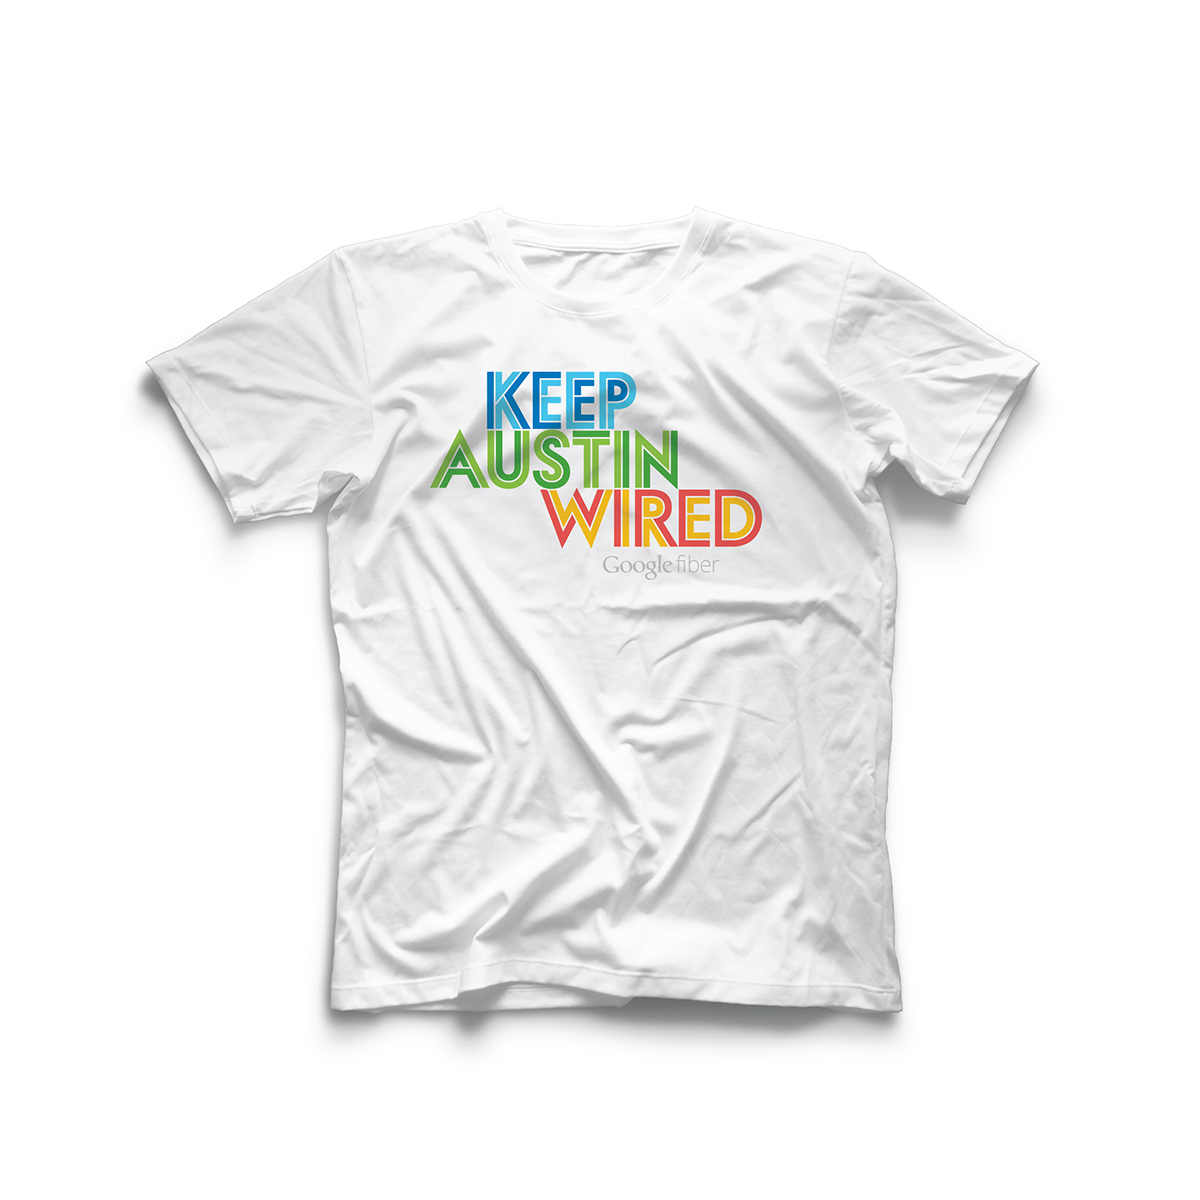 Google Fiber - Keep Austin Wired T-shirt on Behance